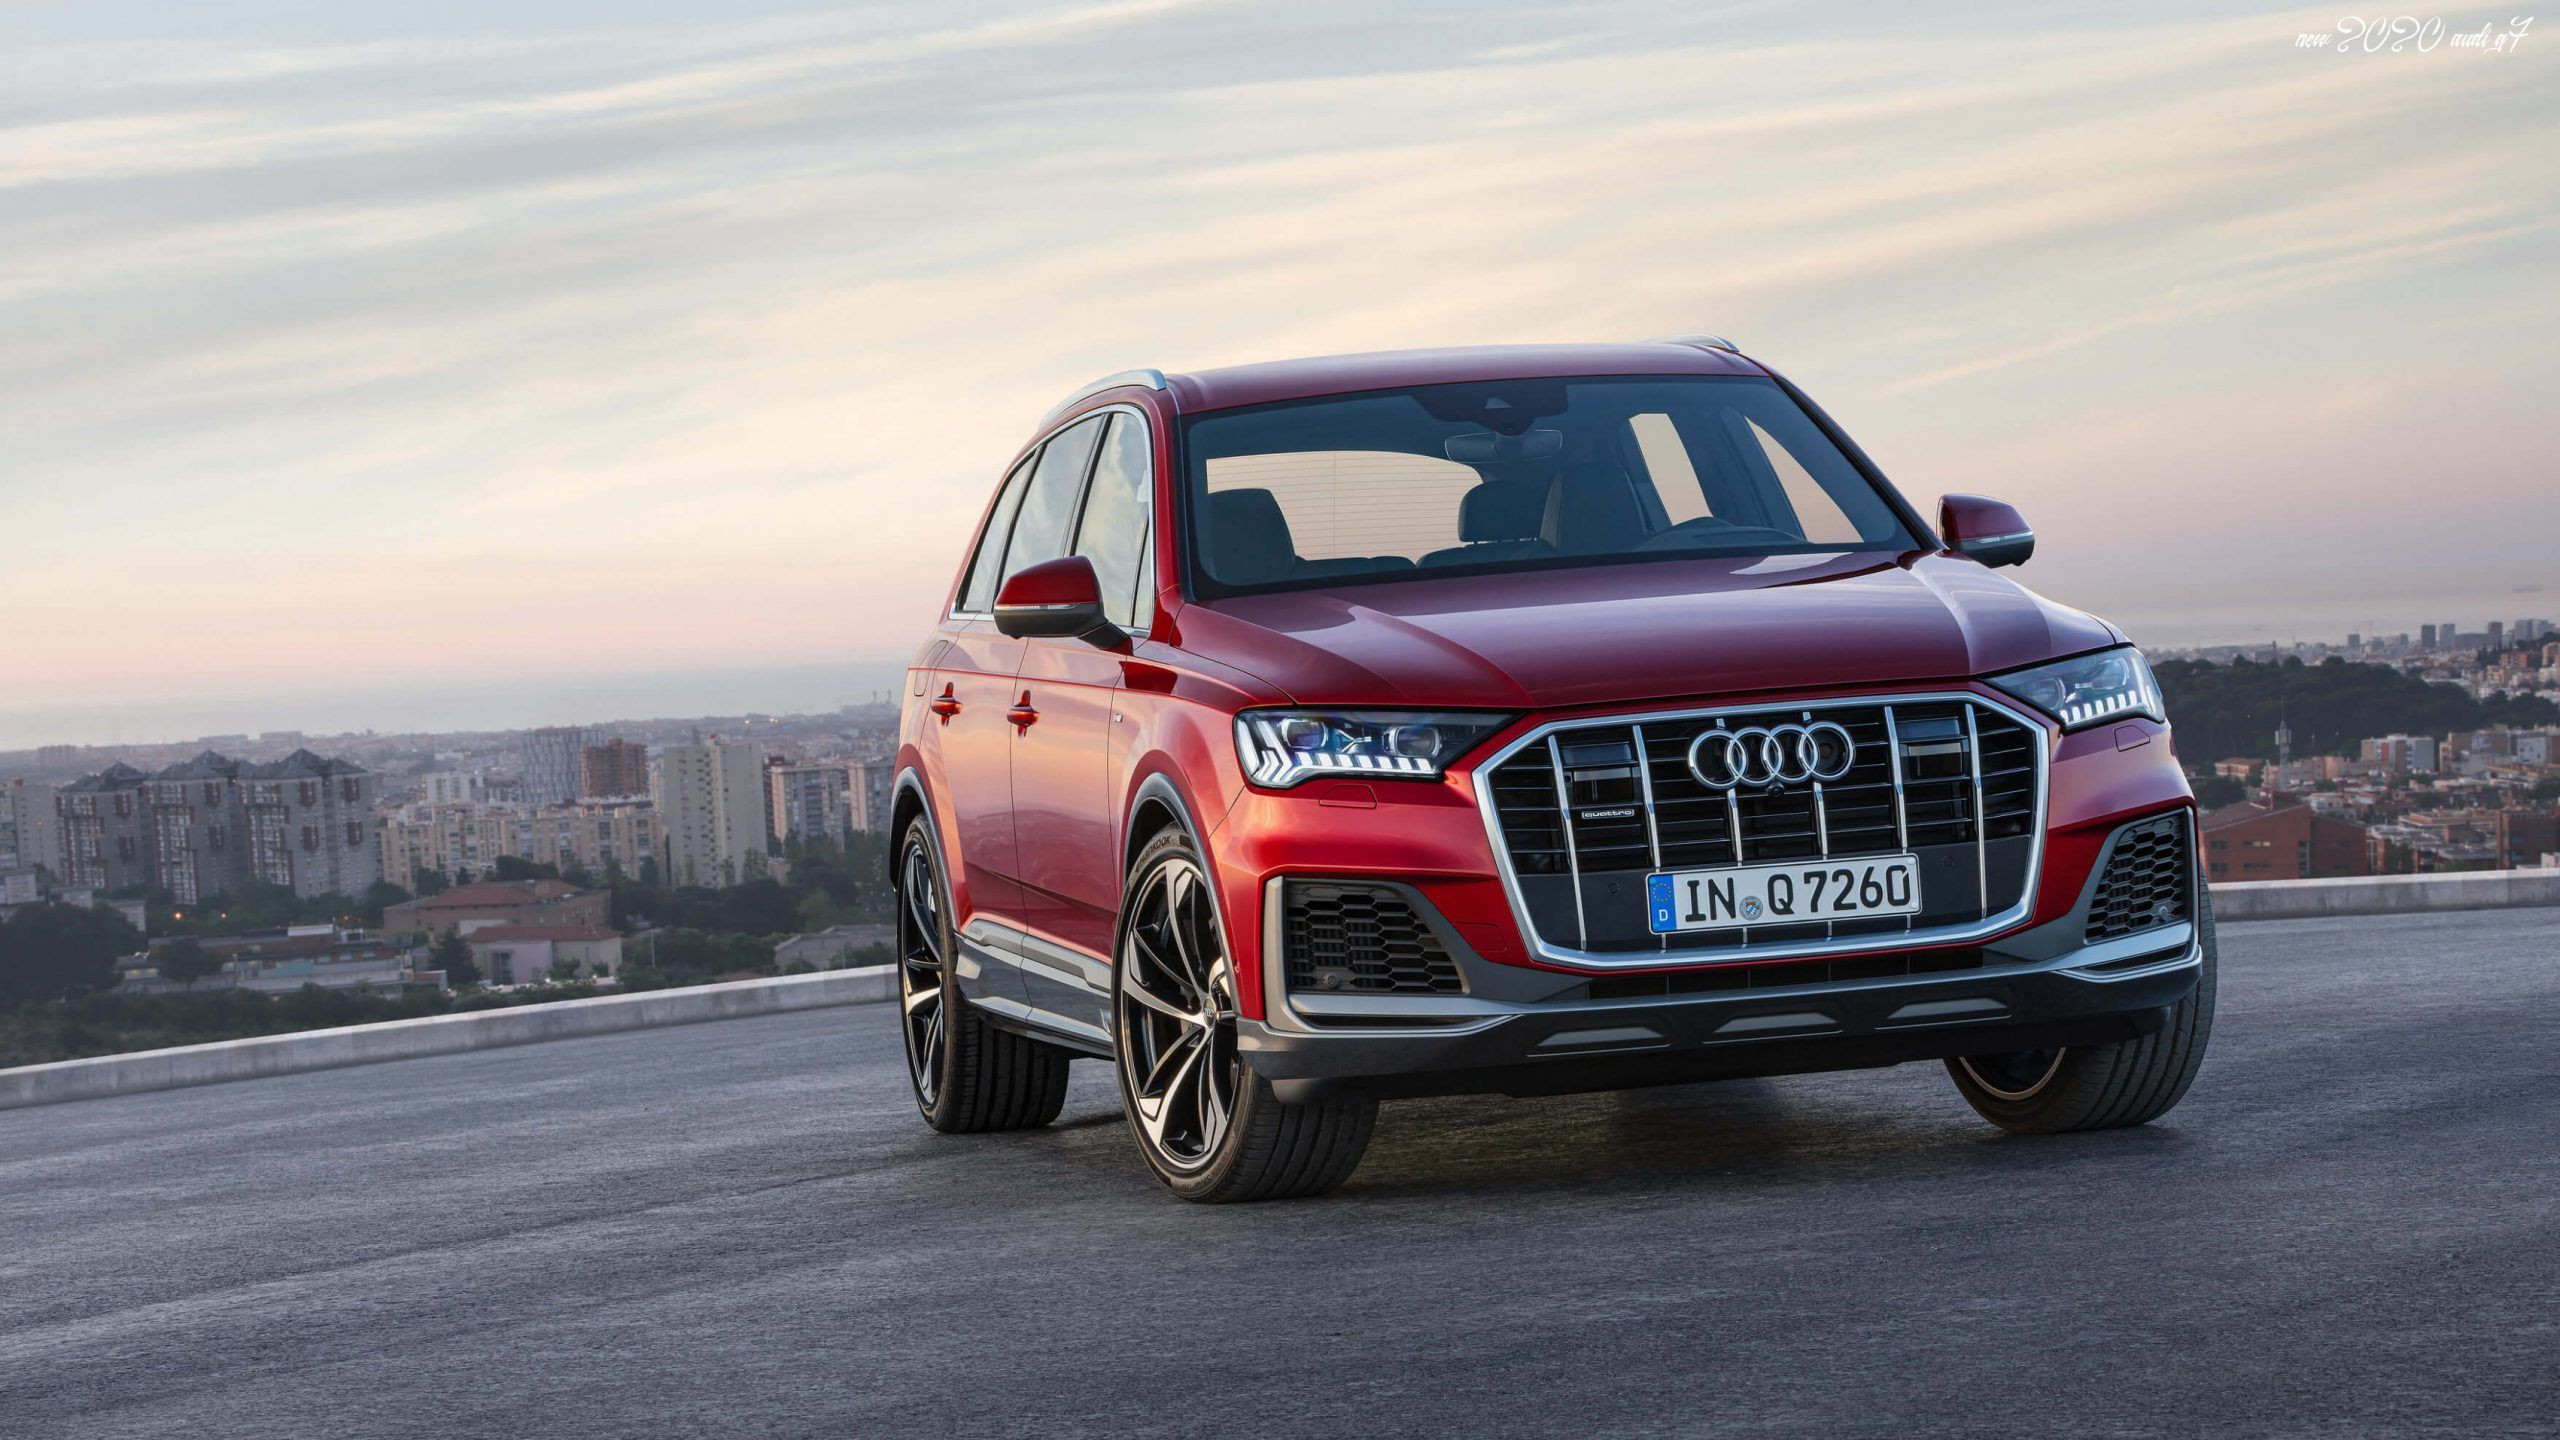 New 2020 Audi Q7 Prices In 2020 Audi Q7 New Audi Q7 Audi